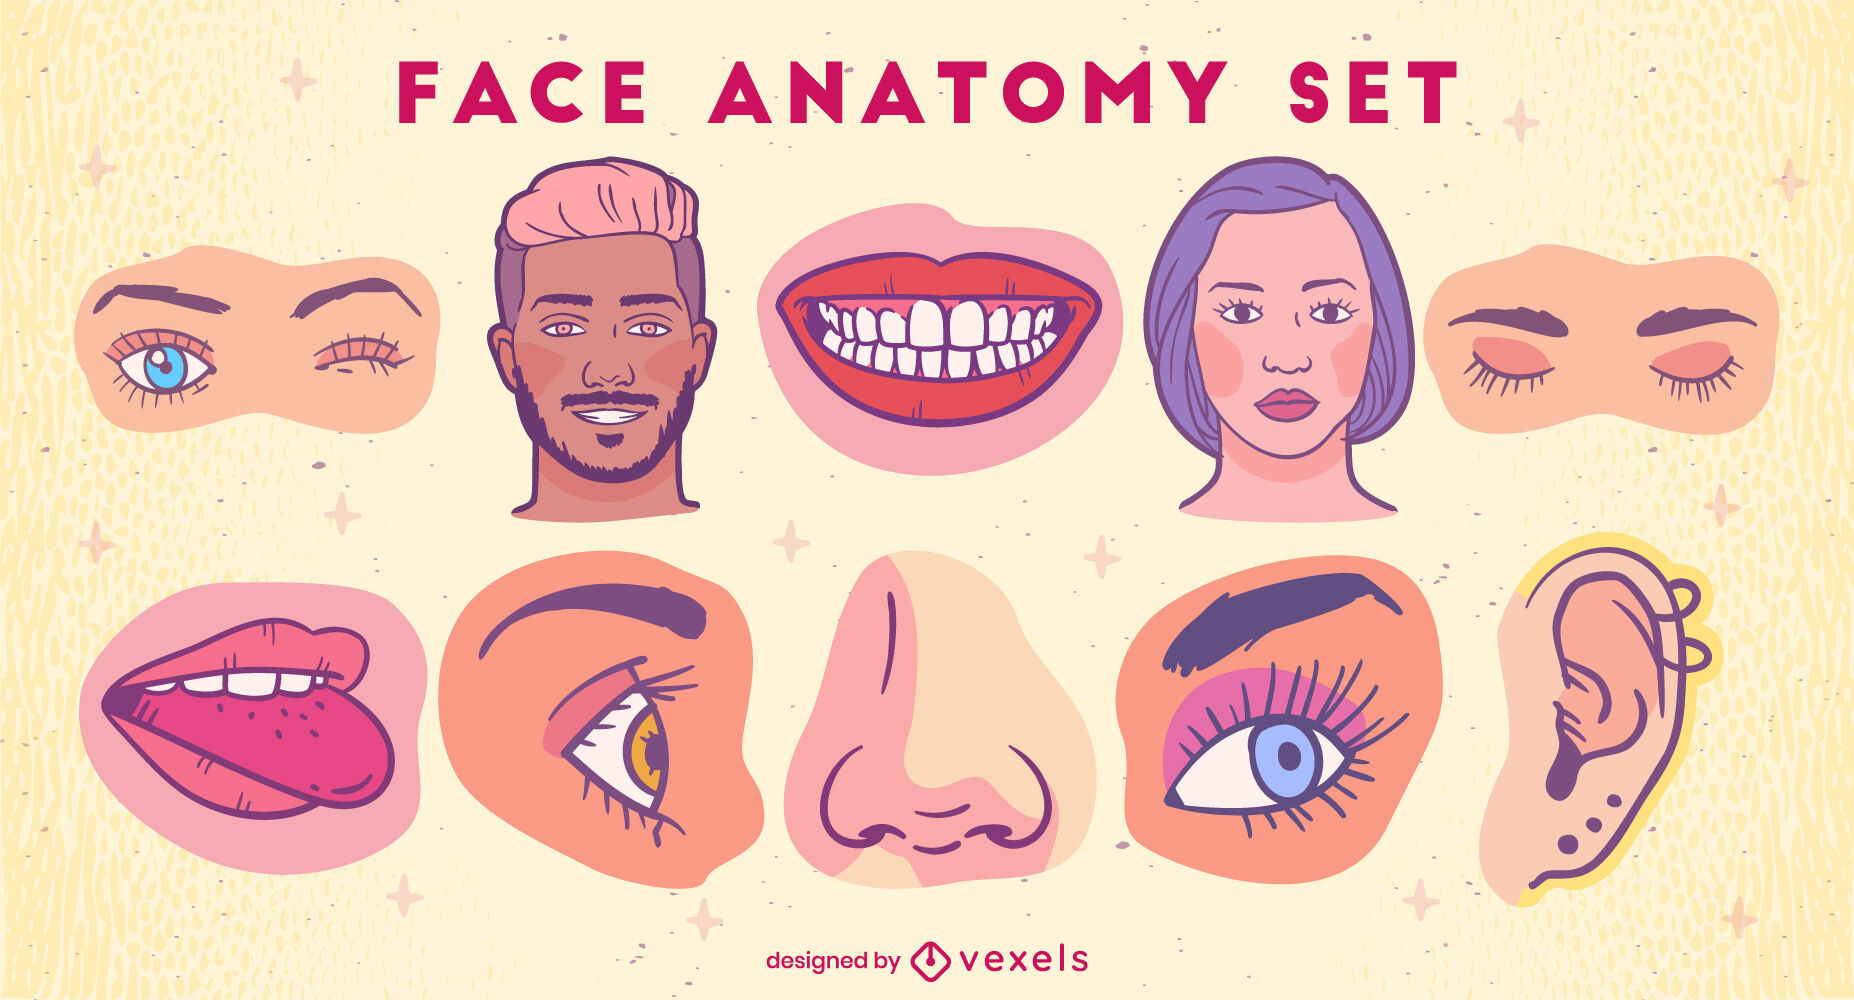 Face anatomy color illustrations set